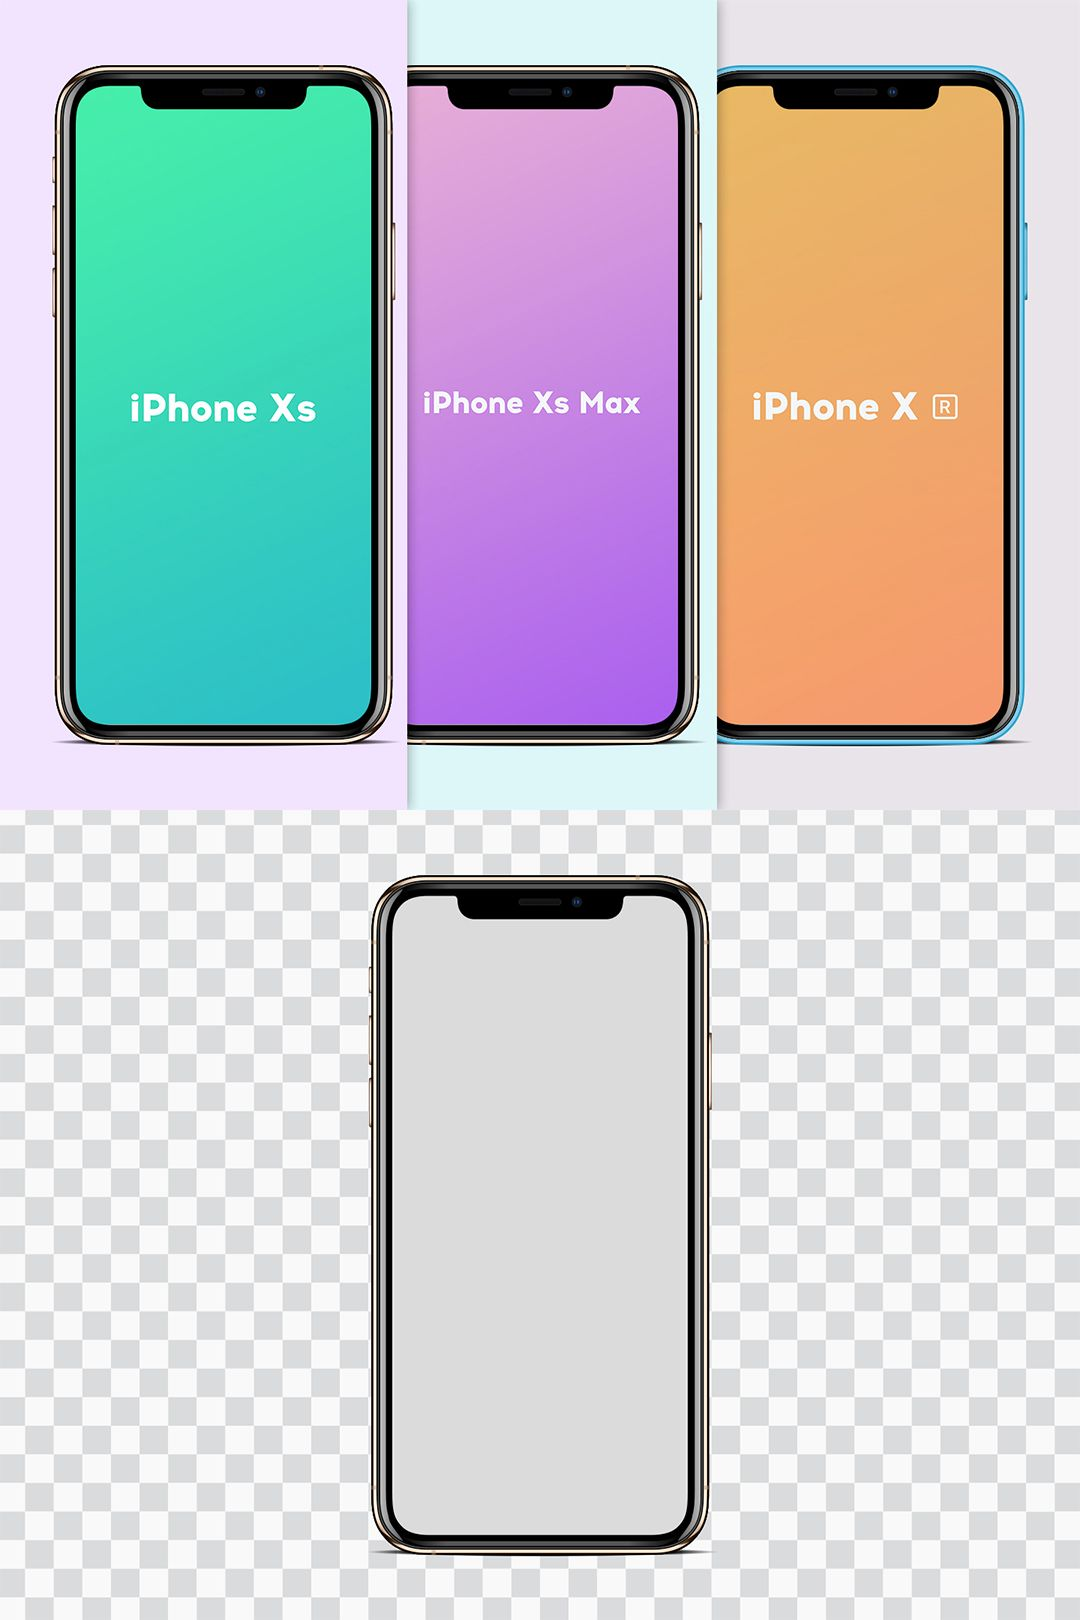 Free Mockup Set Iphone Xs Xs Max Xr Iphone Iphone Psd Free Mockup